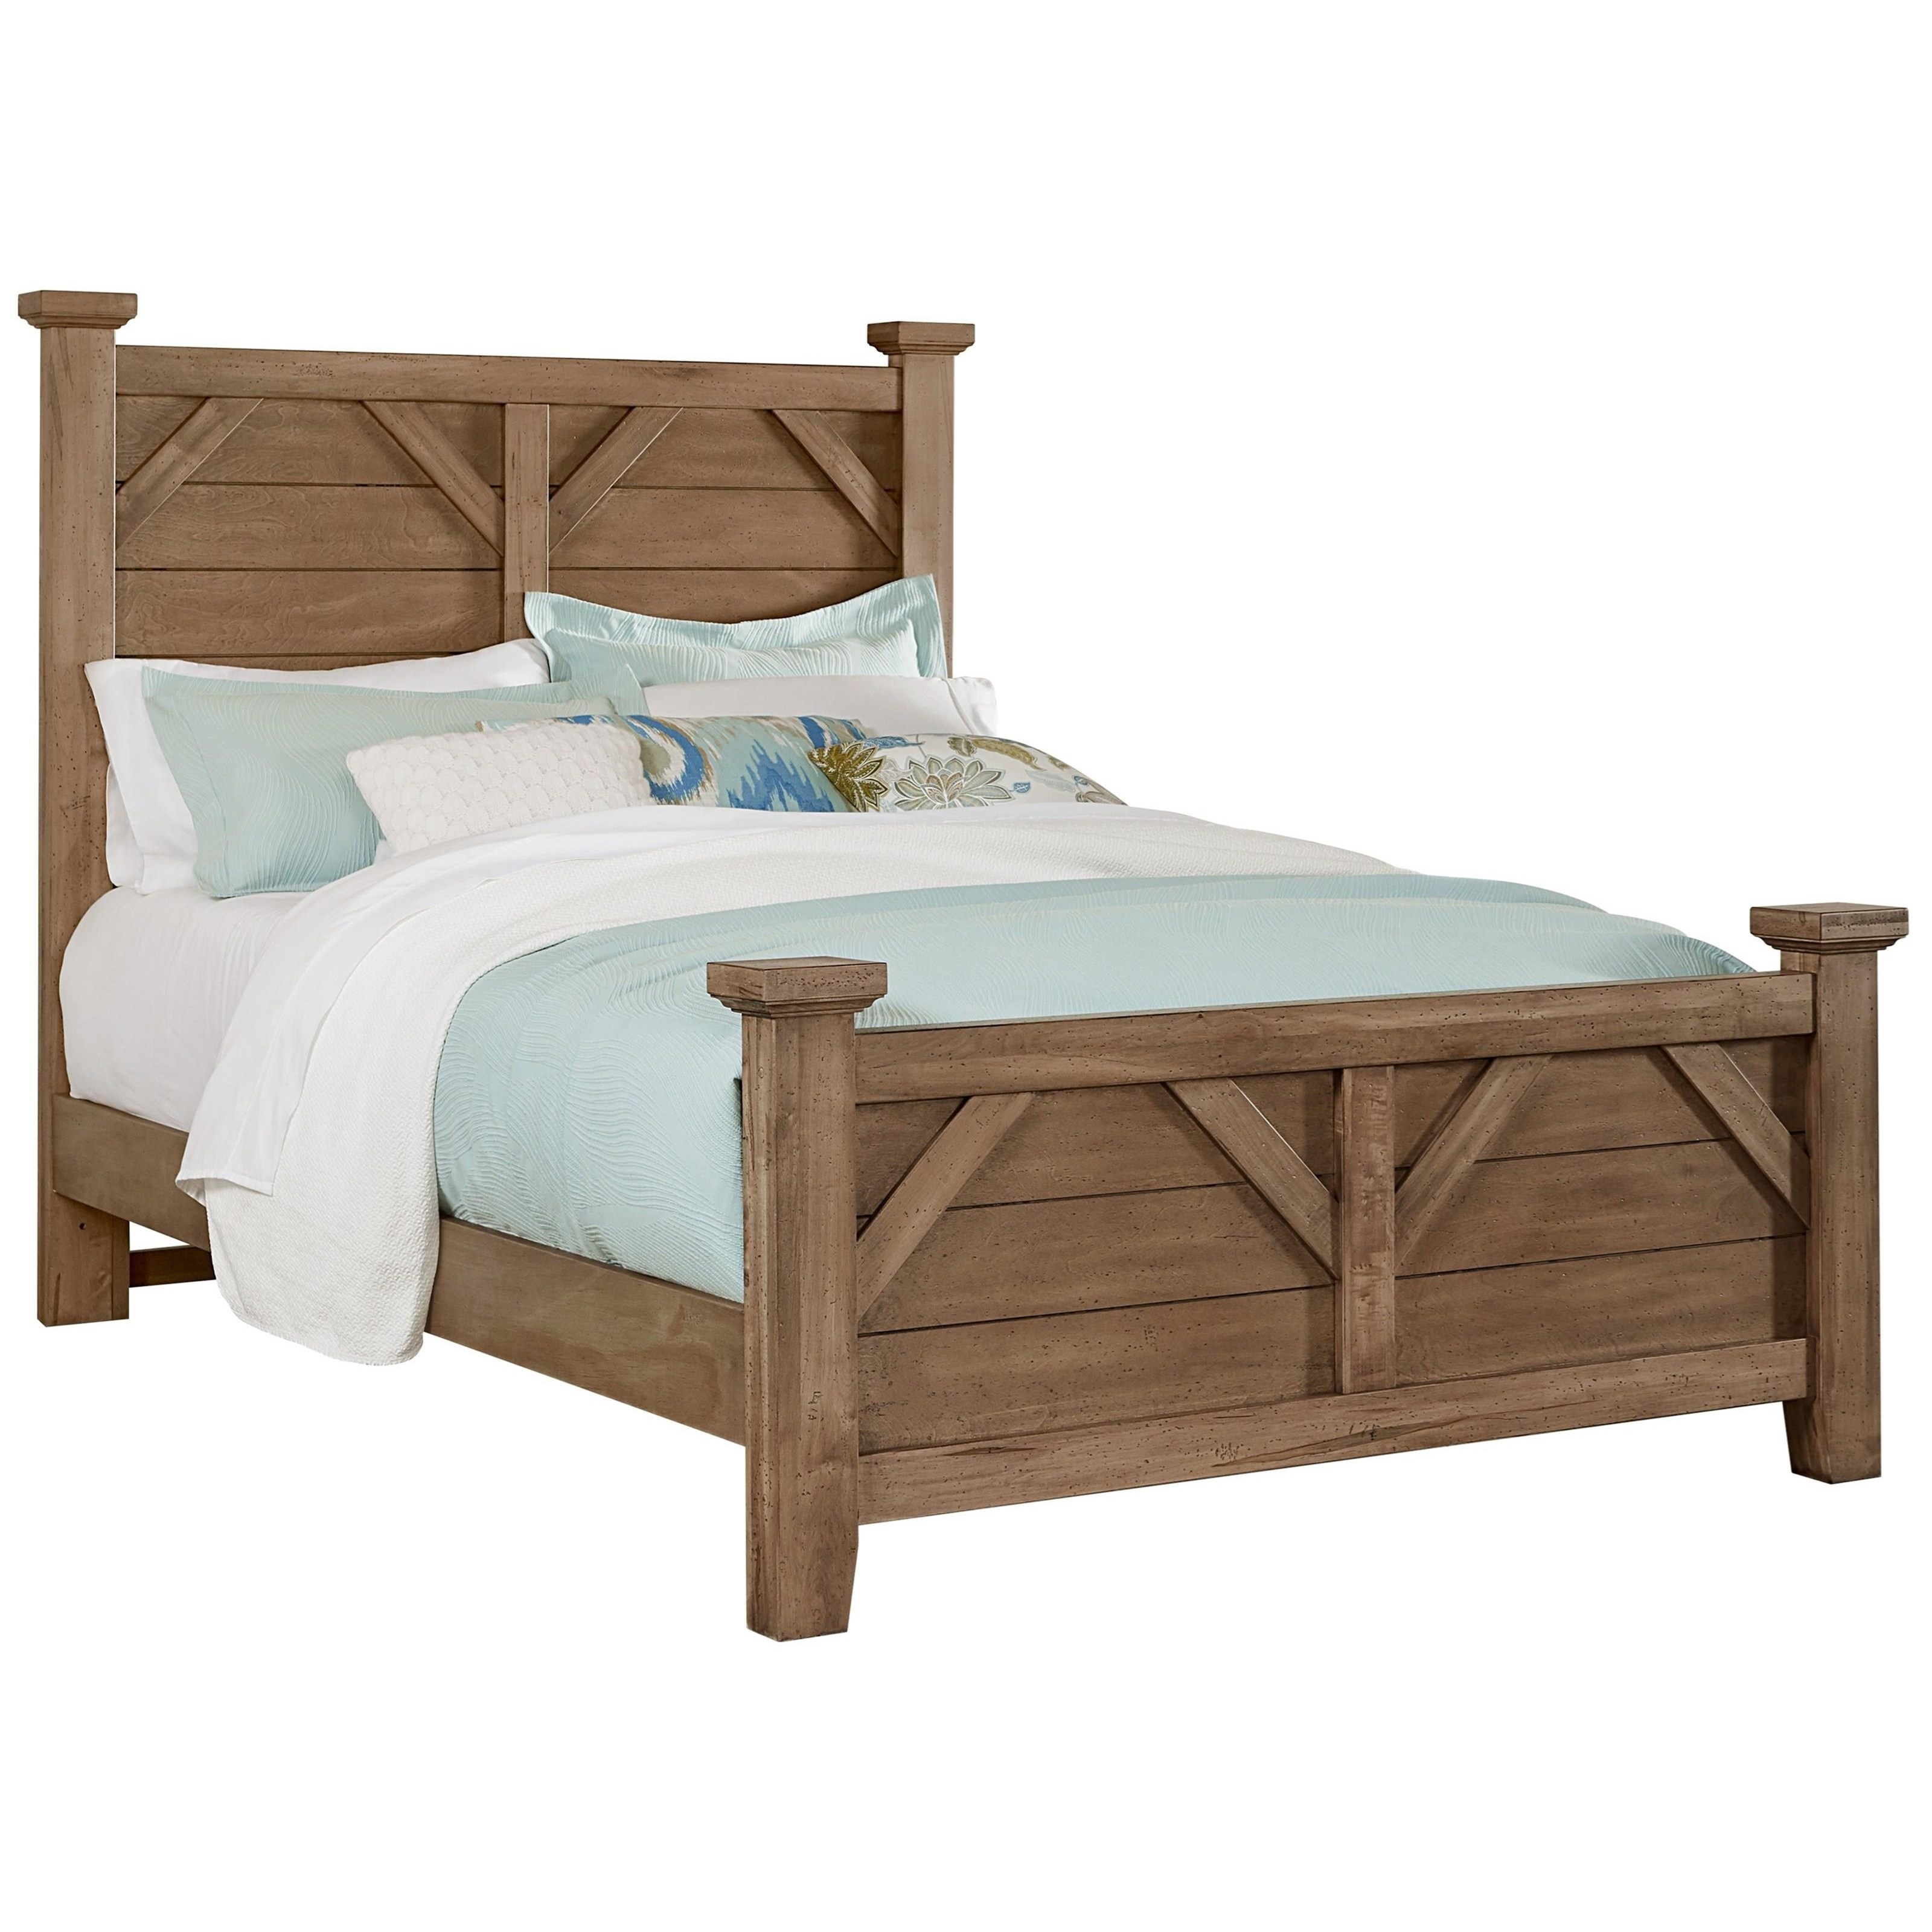 Chestnut Creek King Plank Bed by Centennial Solids at Home Collections Furniture